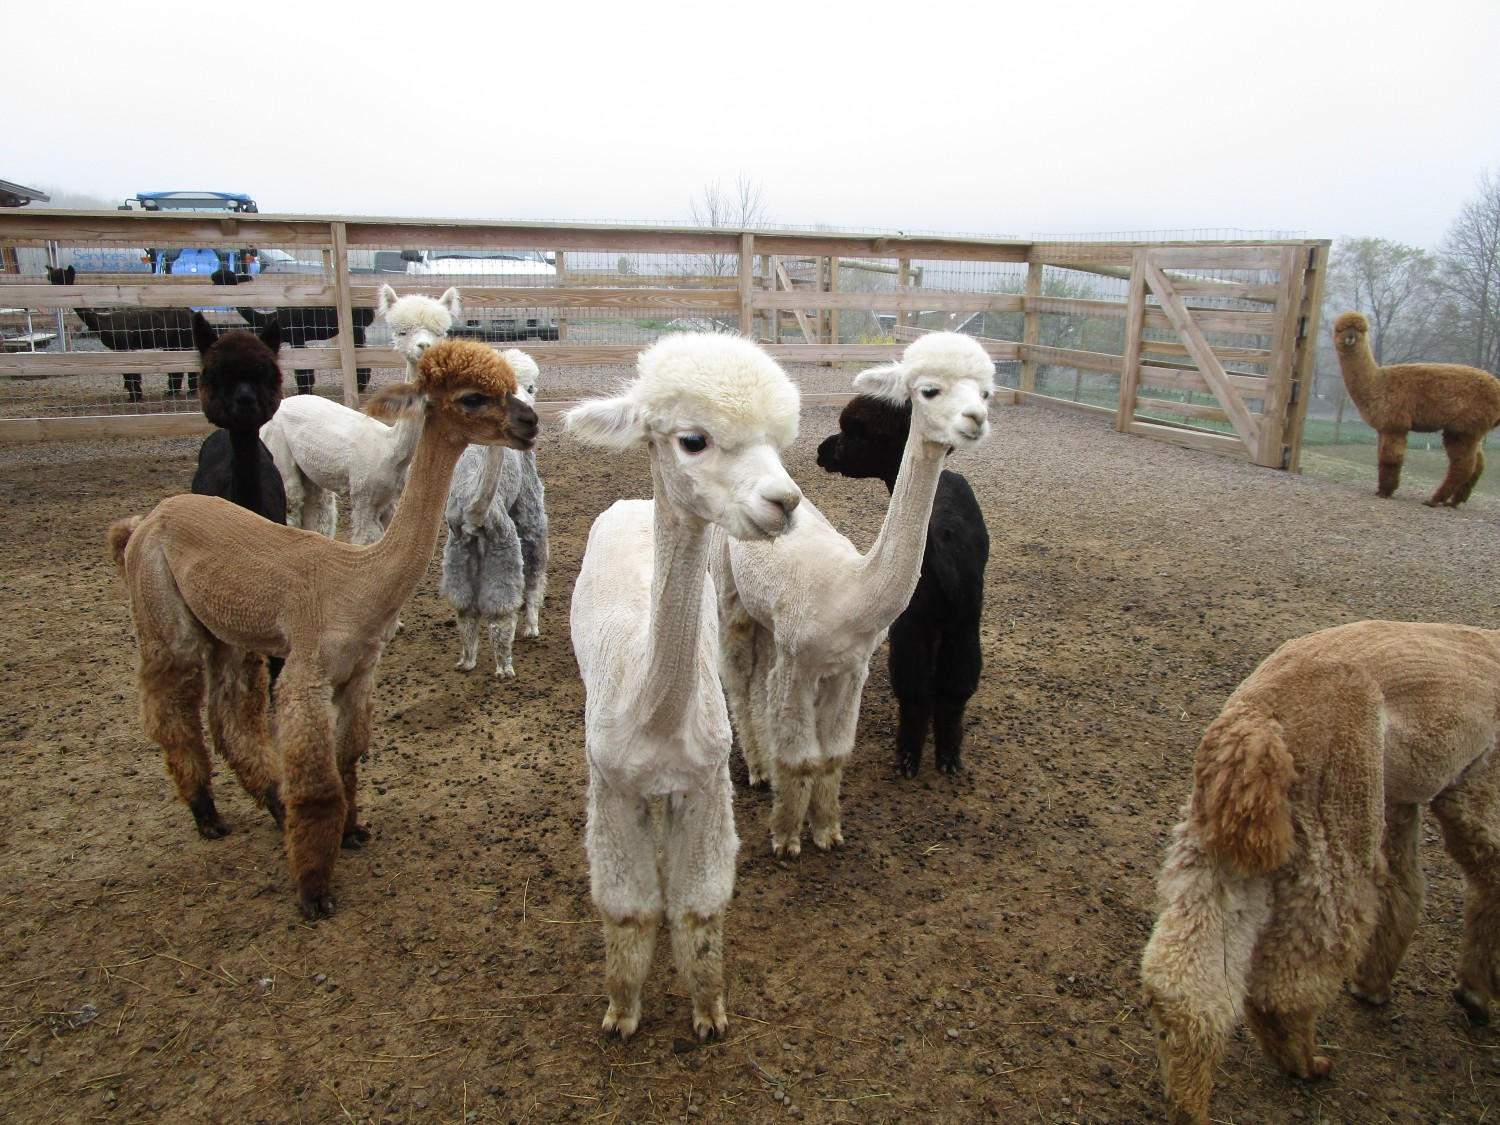 Alpacas - Image by Shayna Benskie